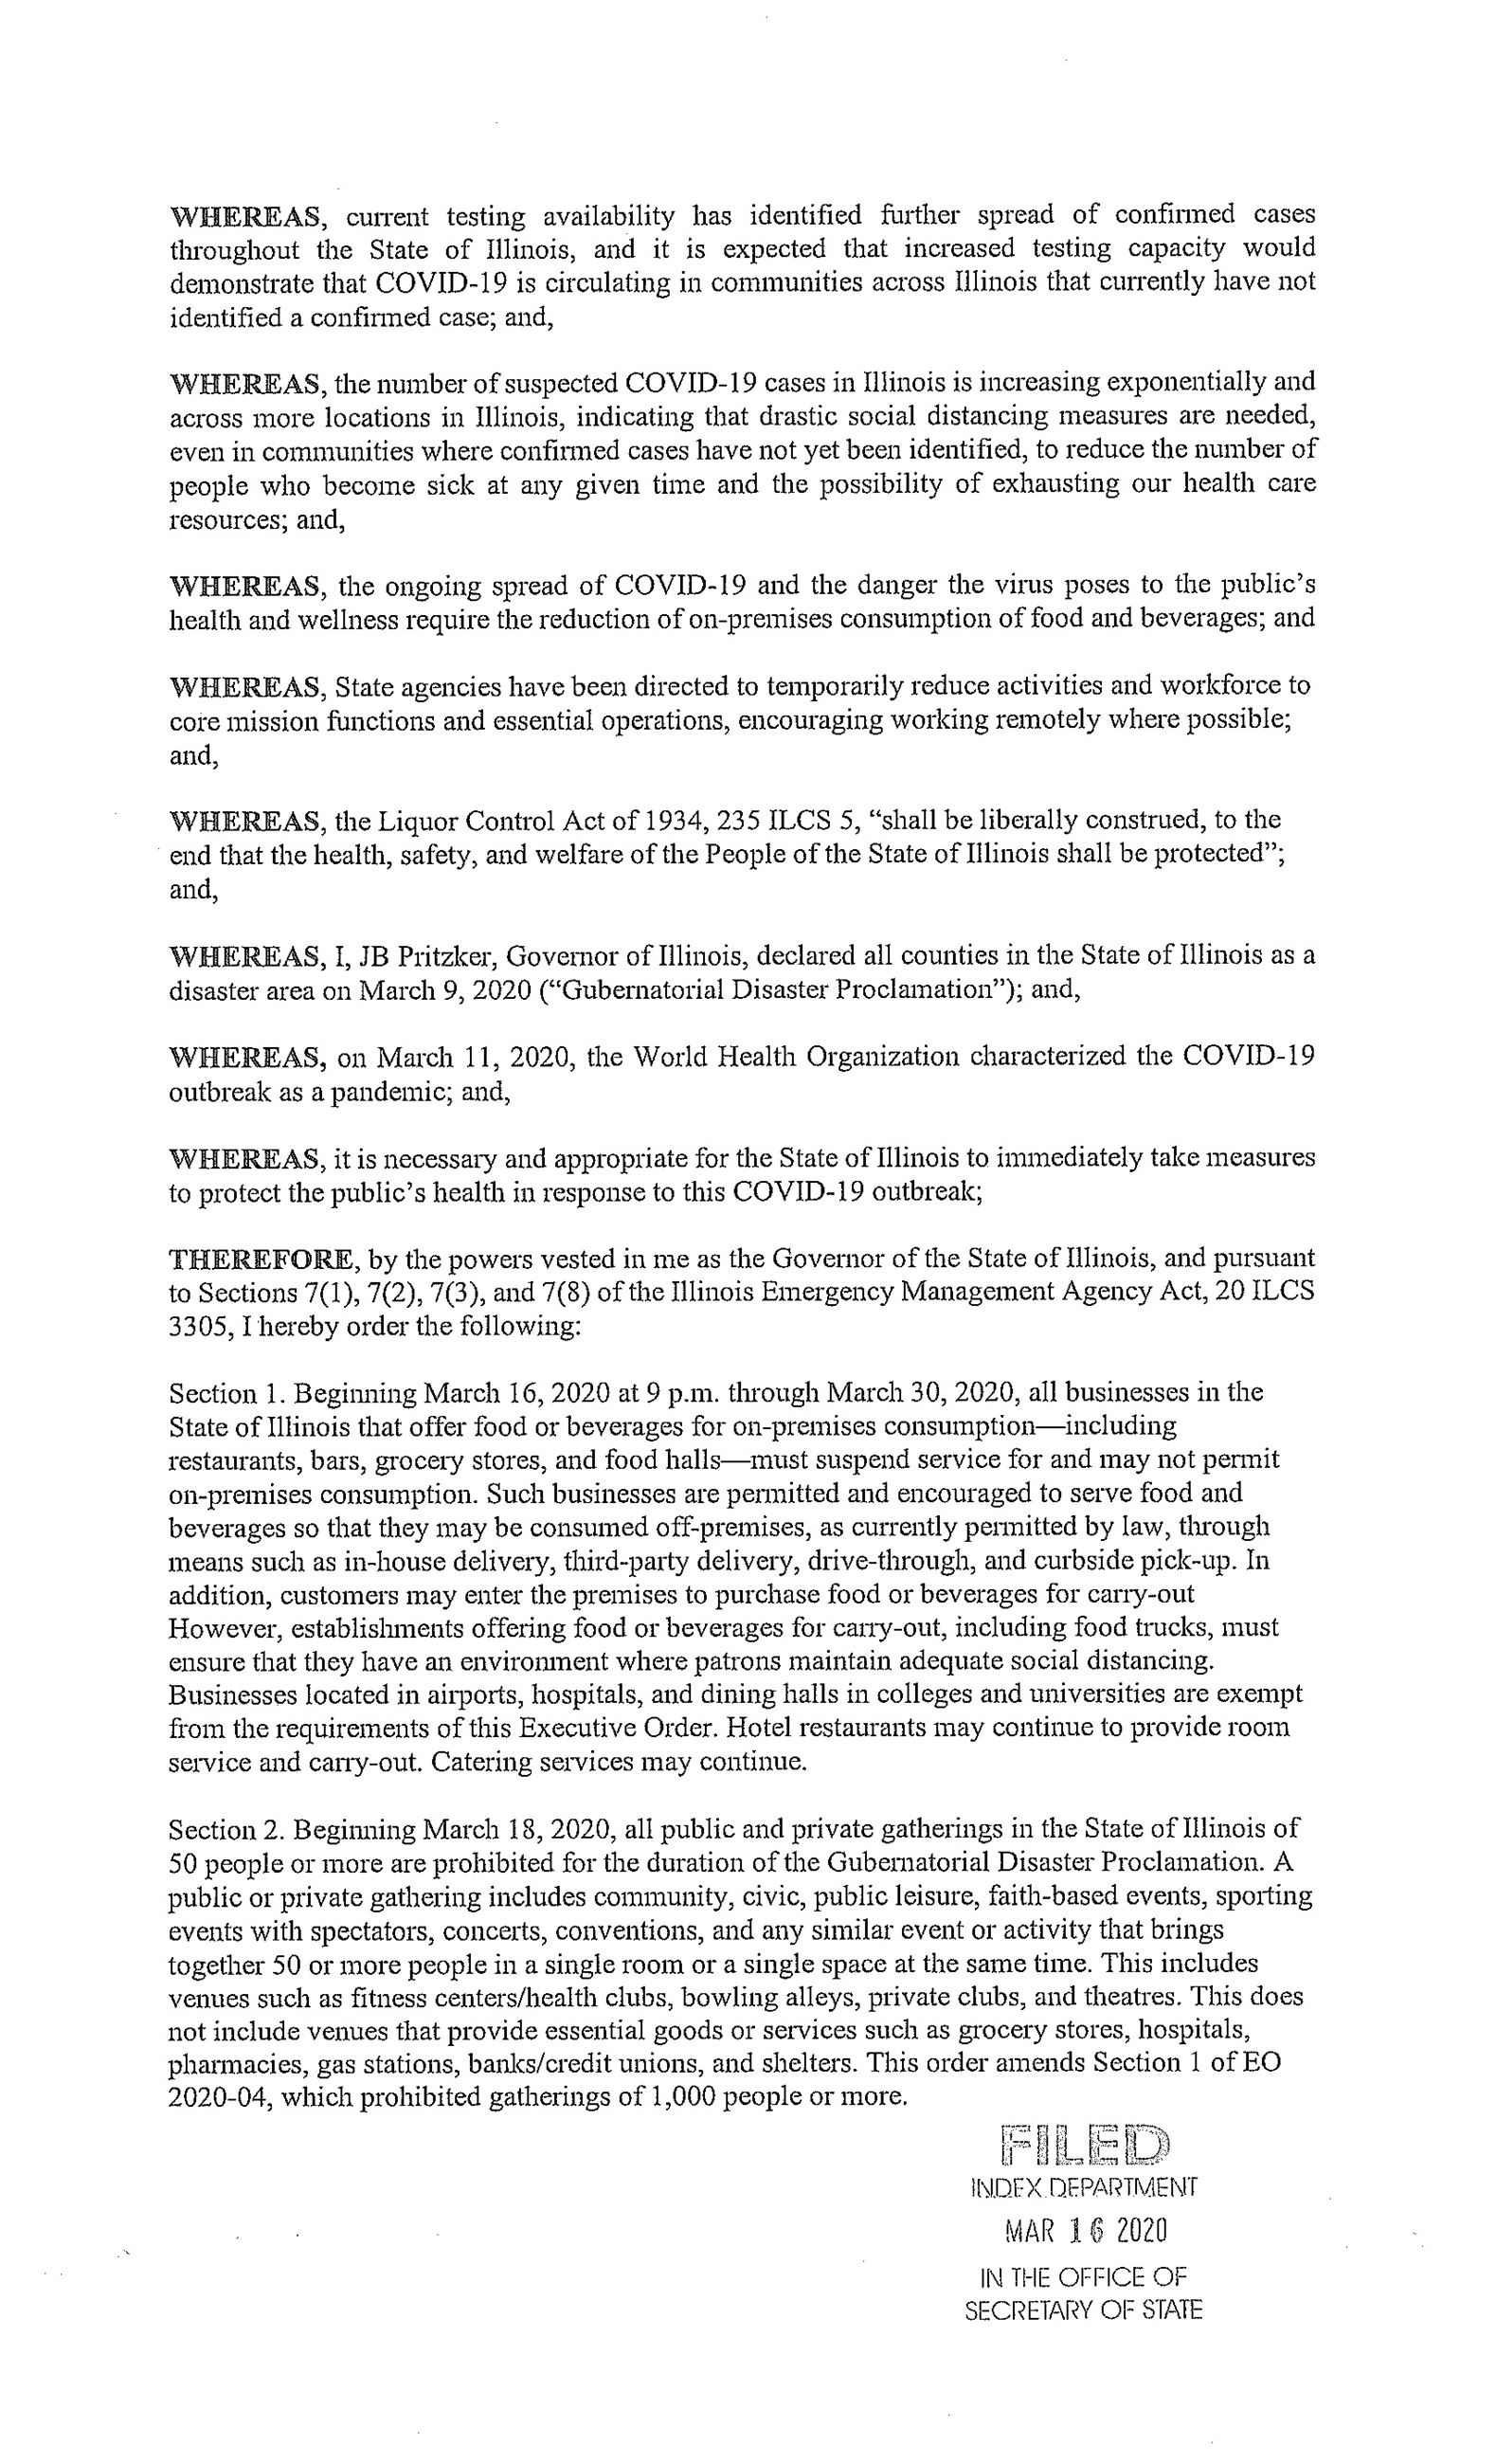 ExecutiveOrder-2020-07_Page_2